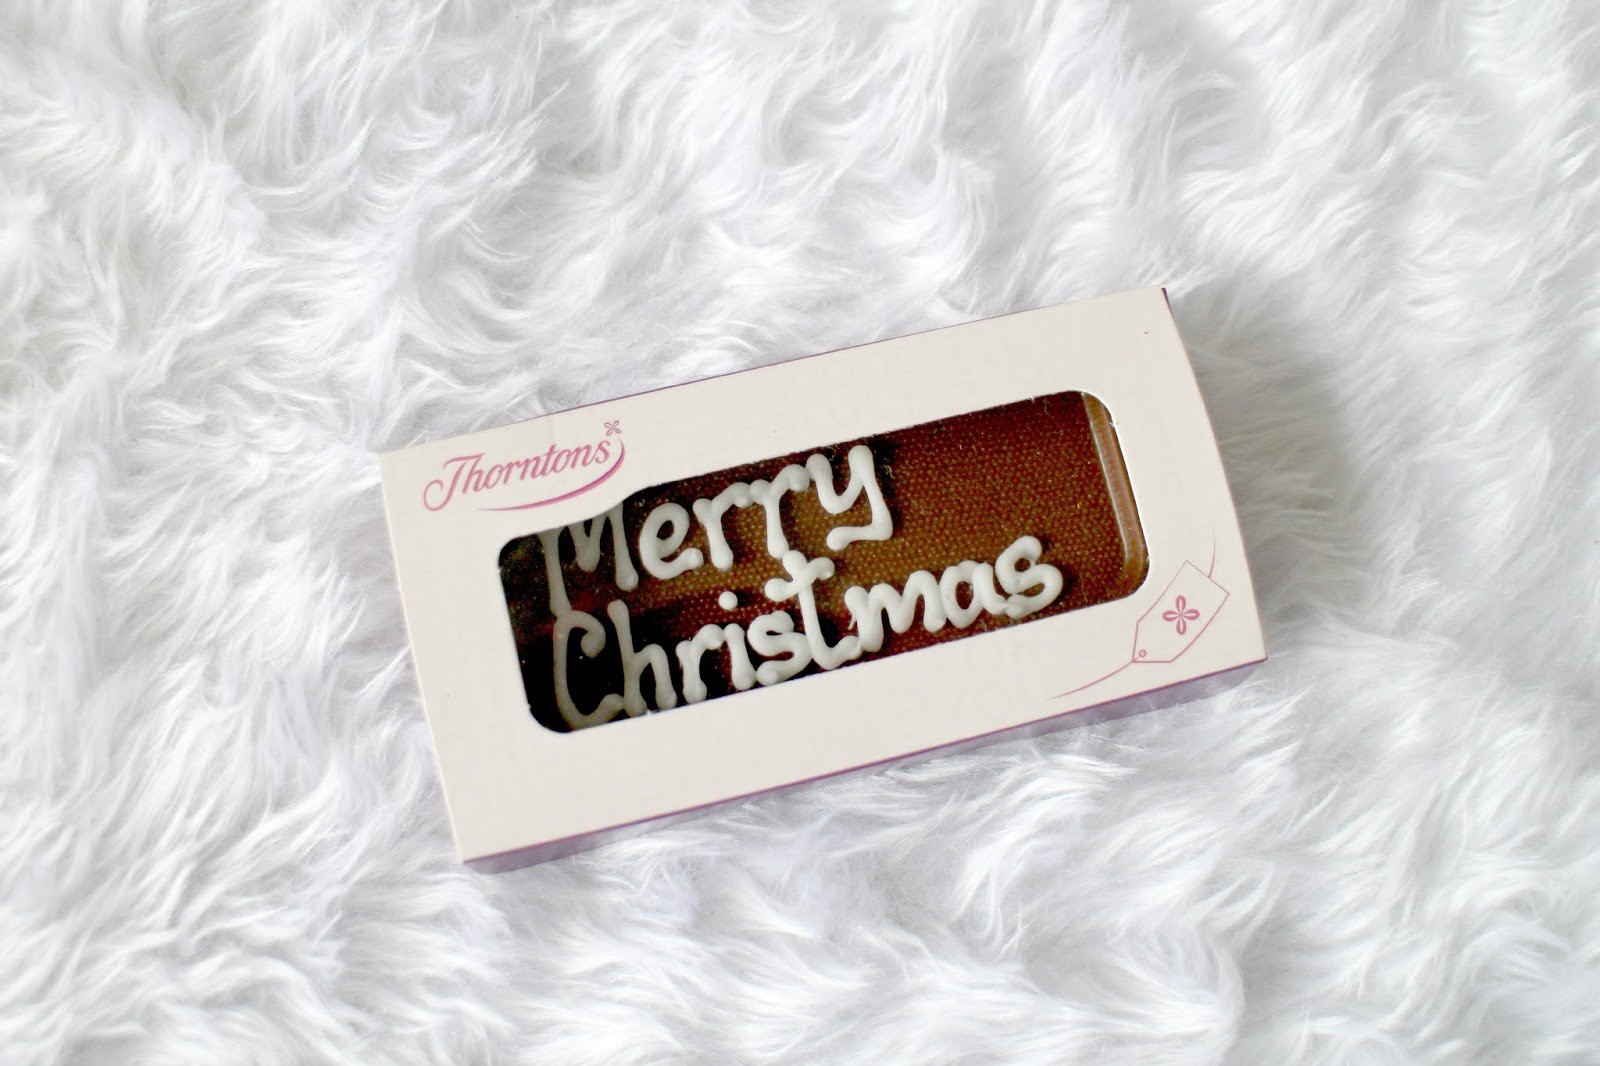 Thorntons Milk Chocolate Gift Tag